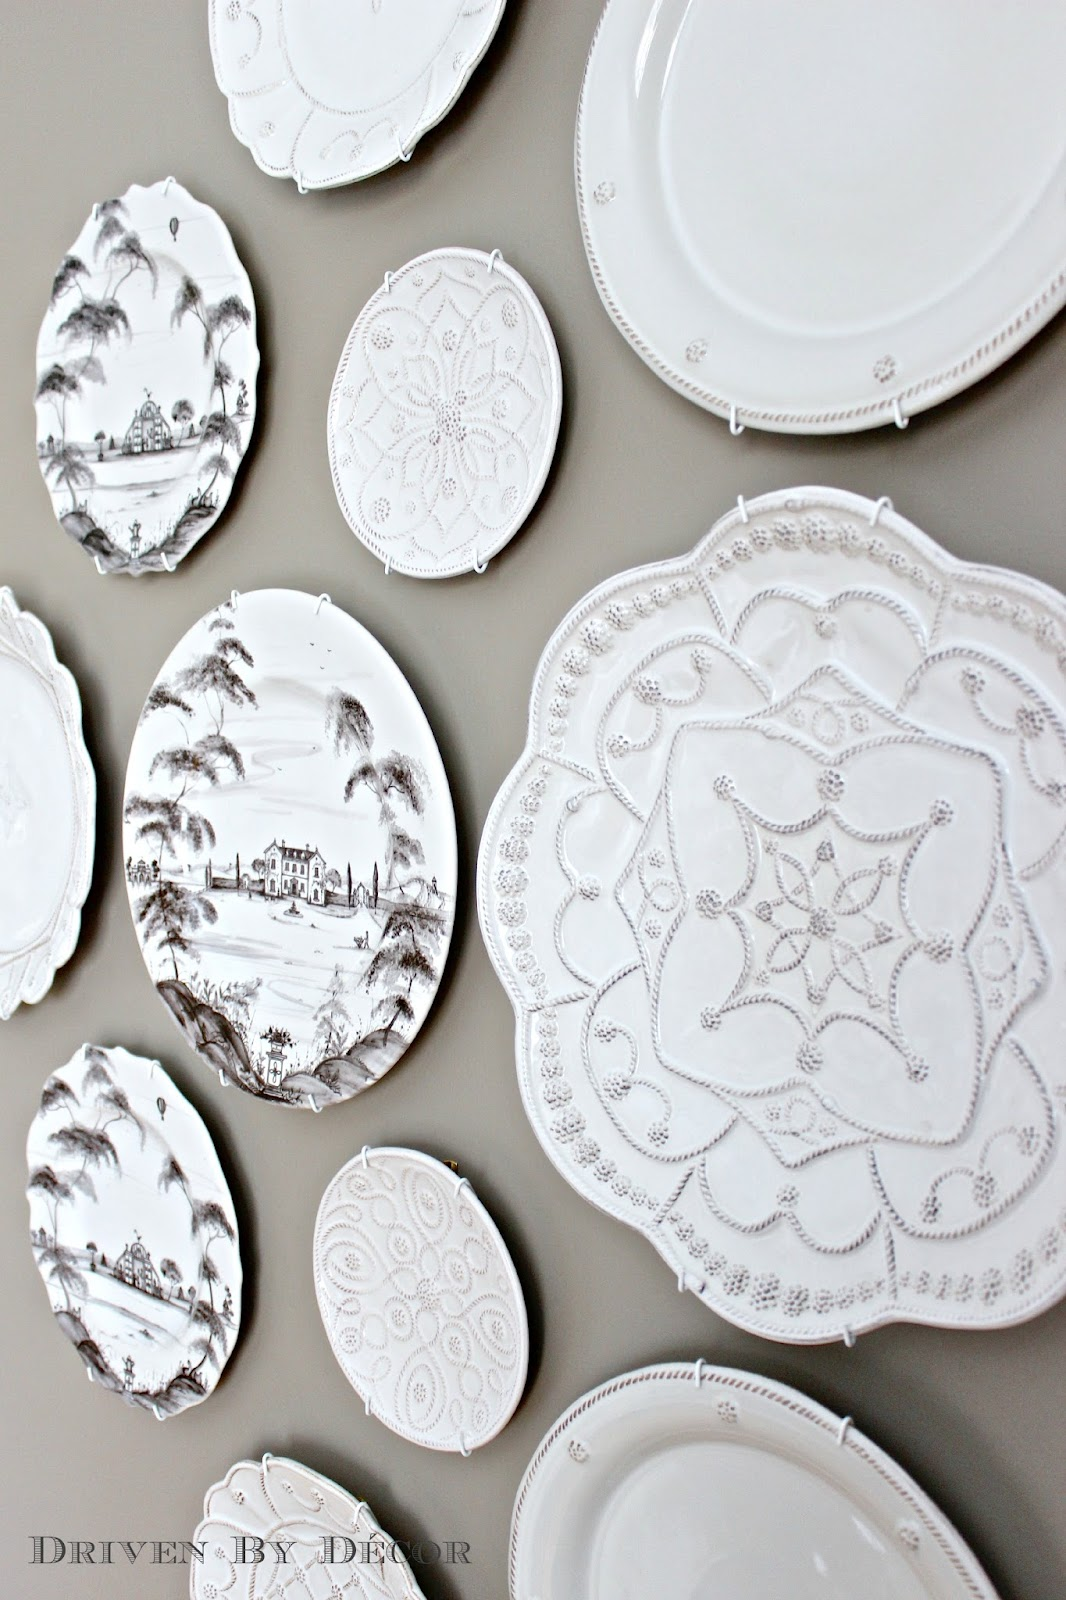 Decorative Christmas Plates For The Wall The Easy Howto For Hanging Plates On The Wall  Drivendecor